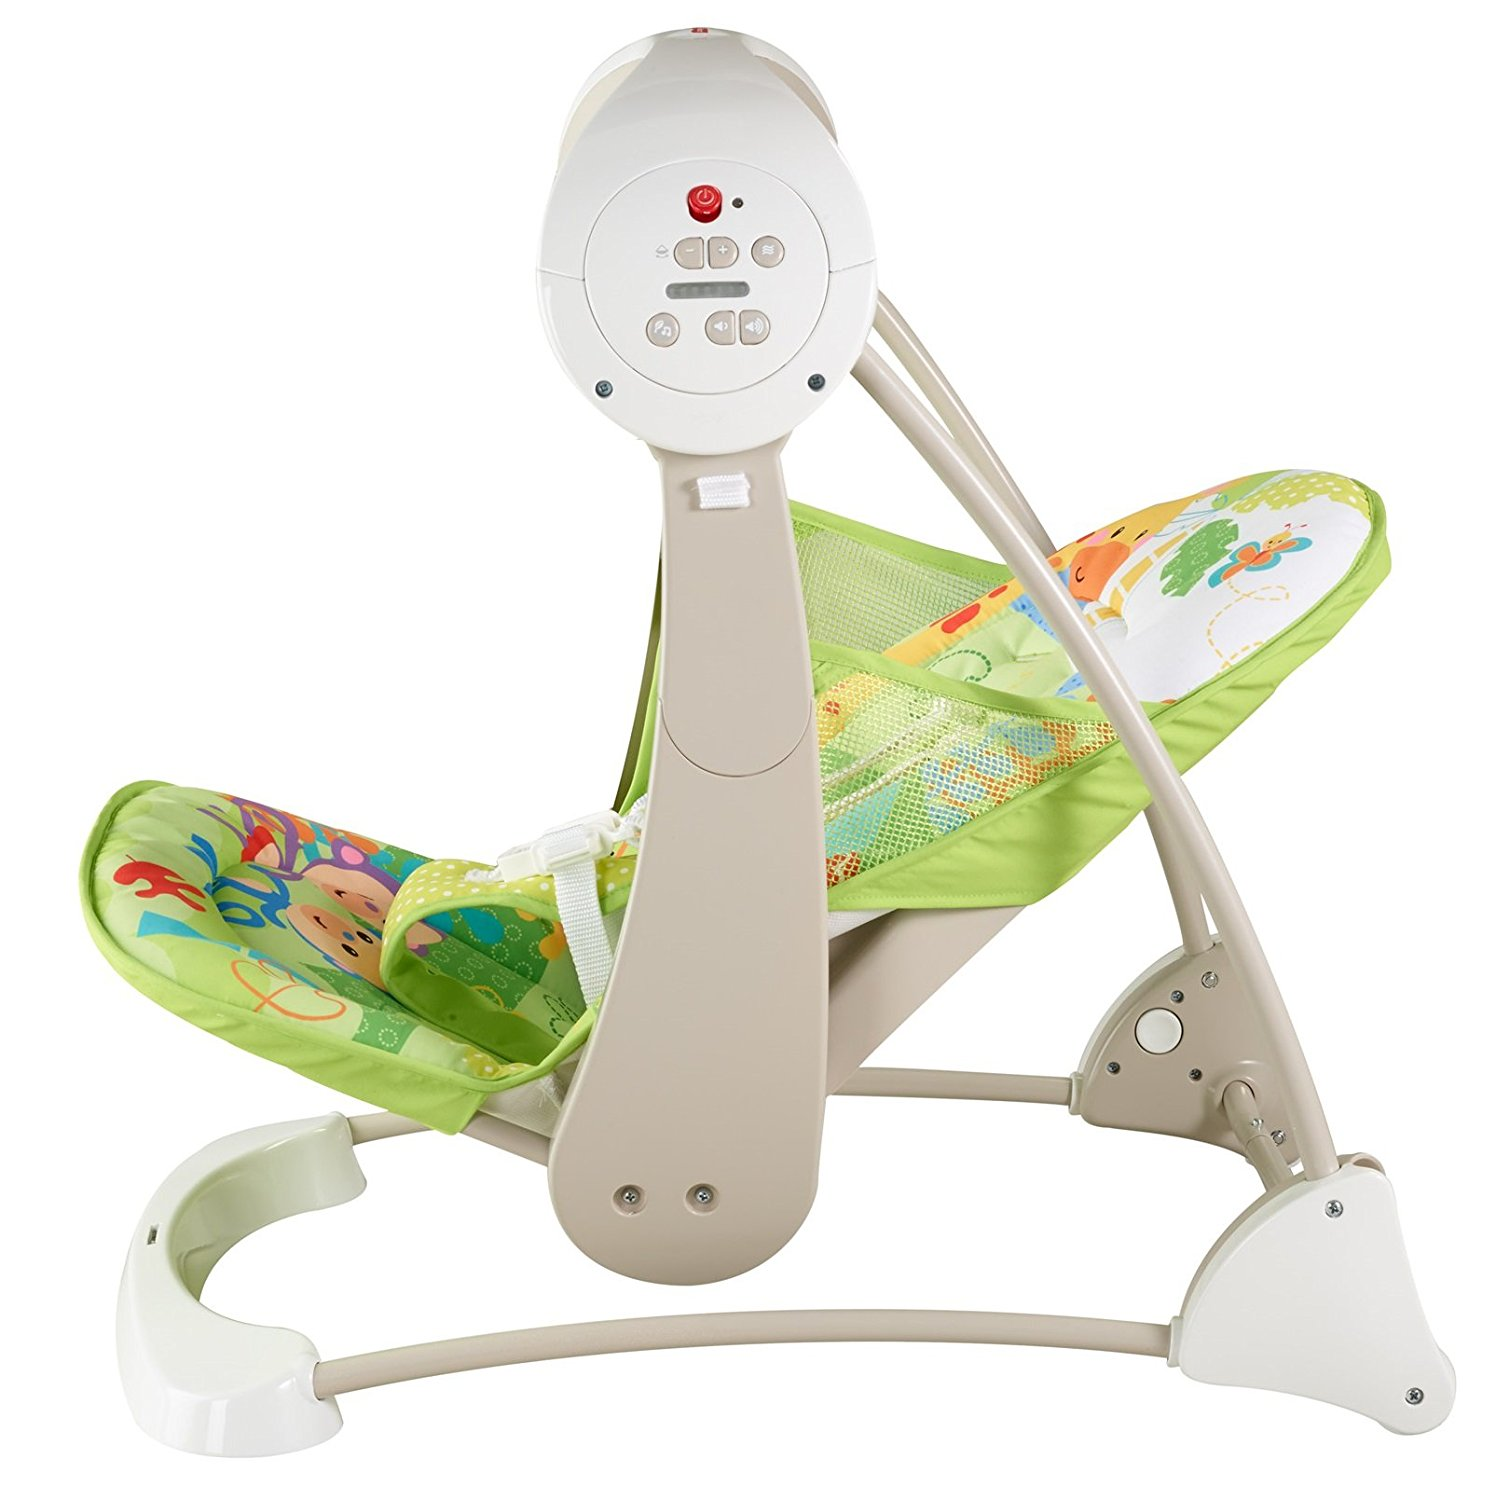 Fisher Price Küche Fisher Price Rainforest Babyschaukel 2 In 1 Kompakt